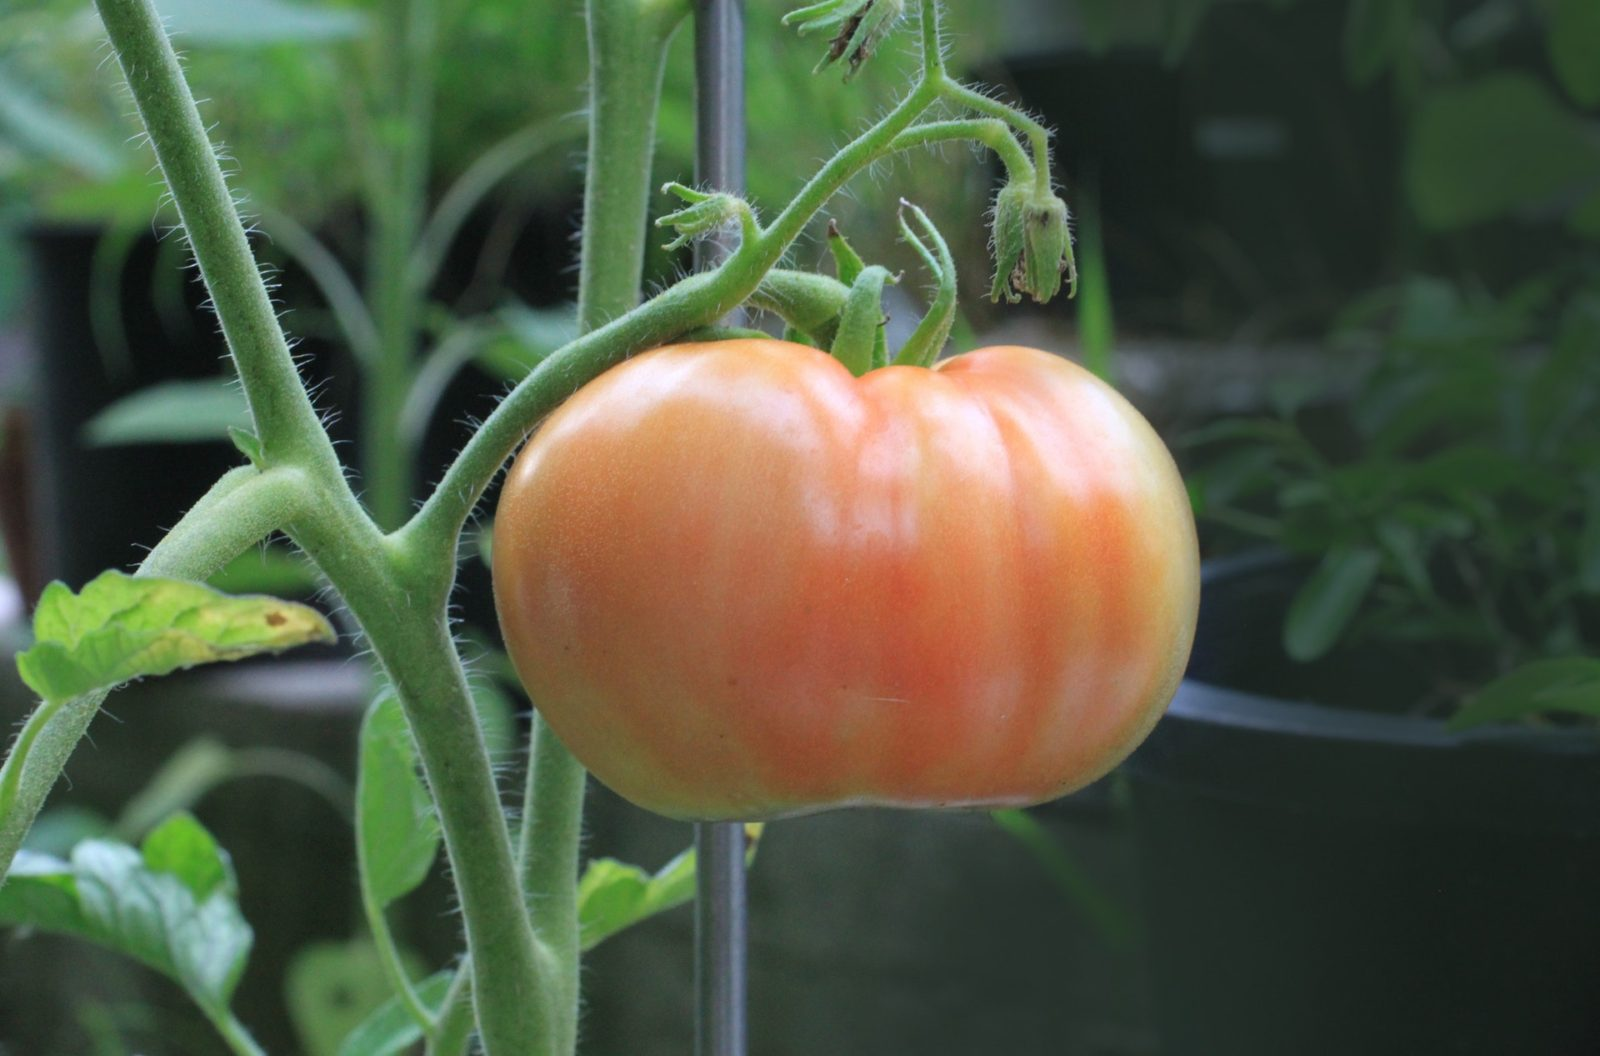 What is the best way to save your tomato plants?